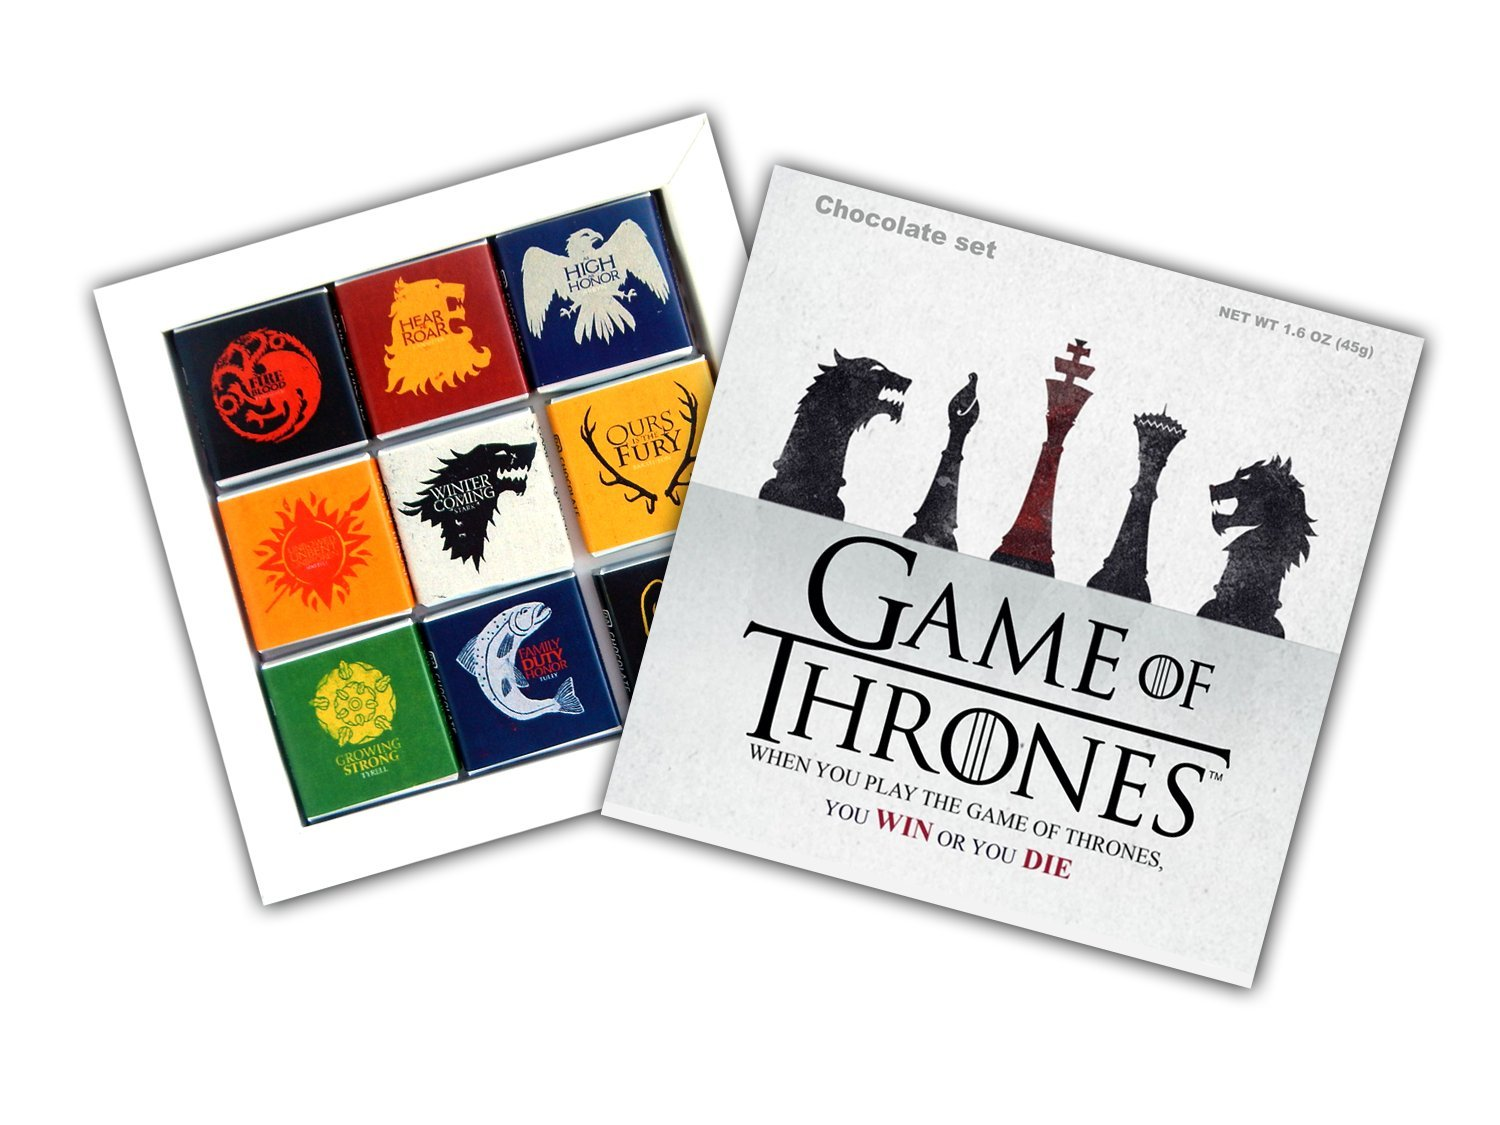 DA CHOCOLATE Souvenir Candy GAME OF THRONES Great Houses of ...